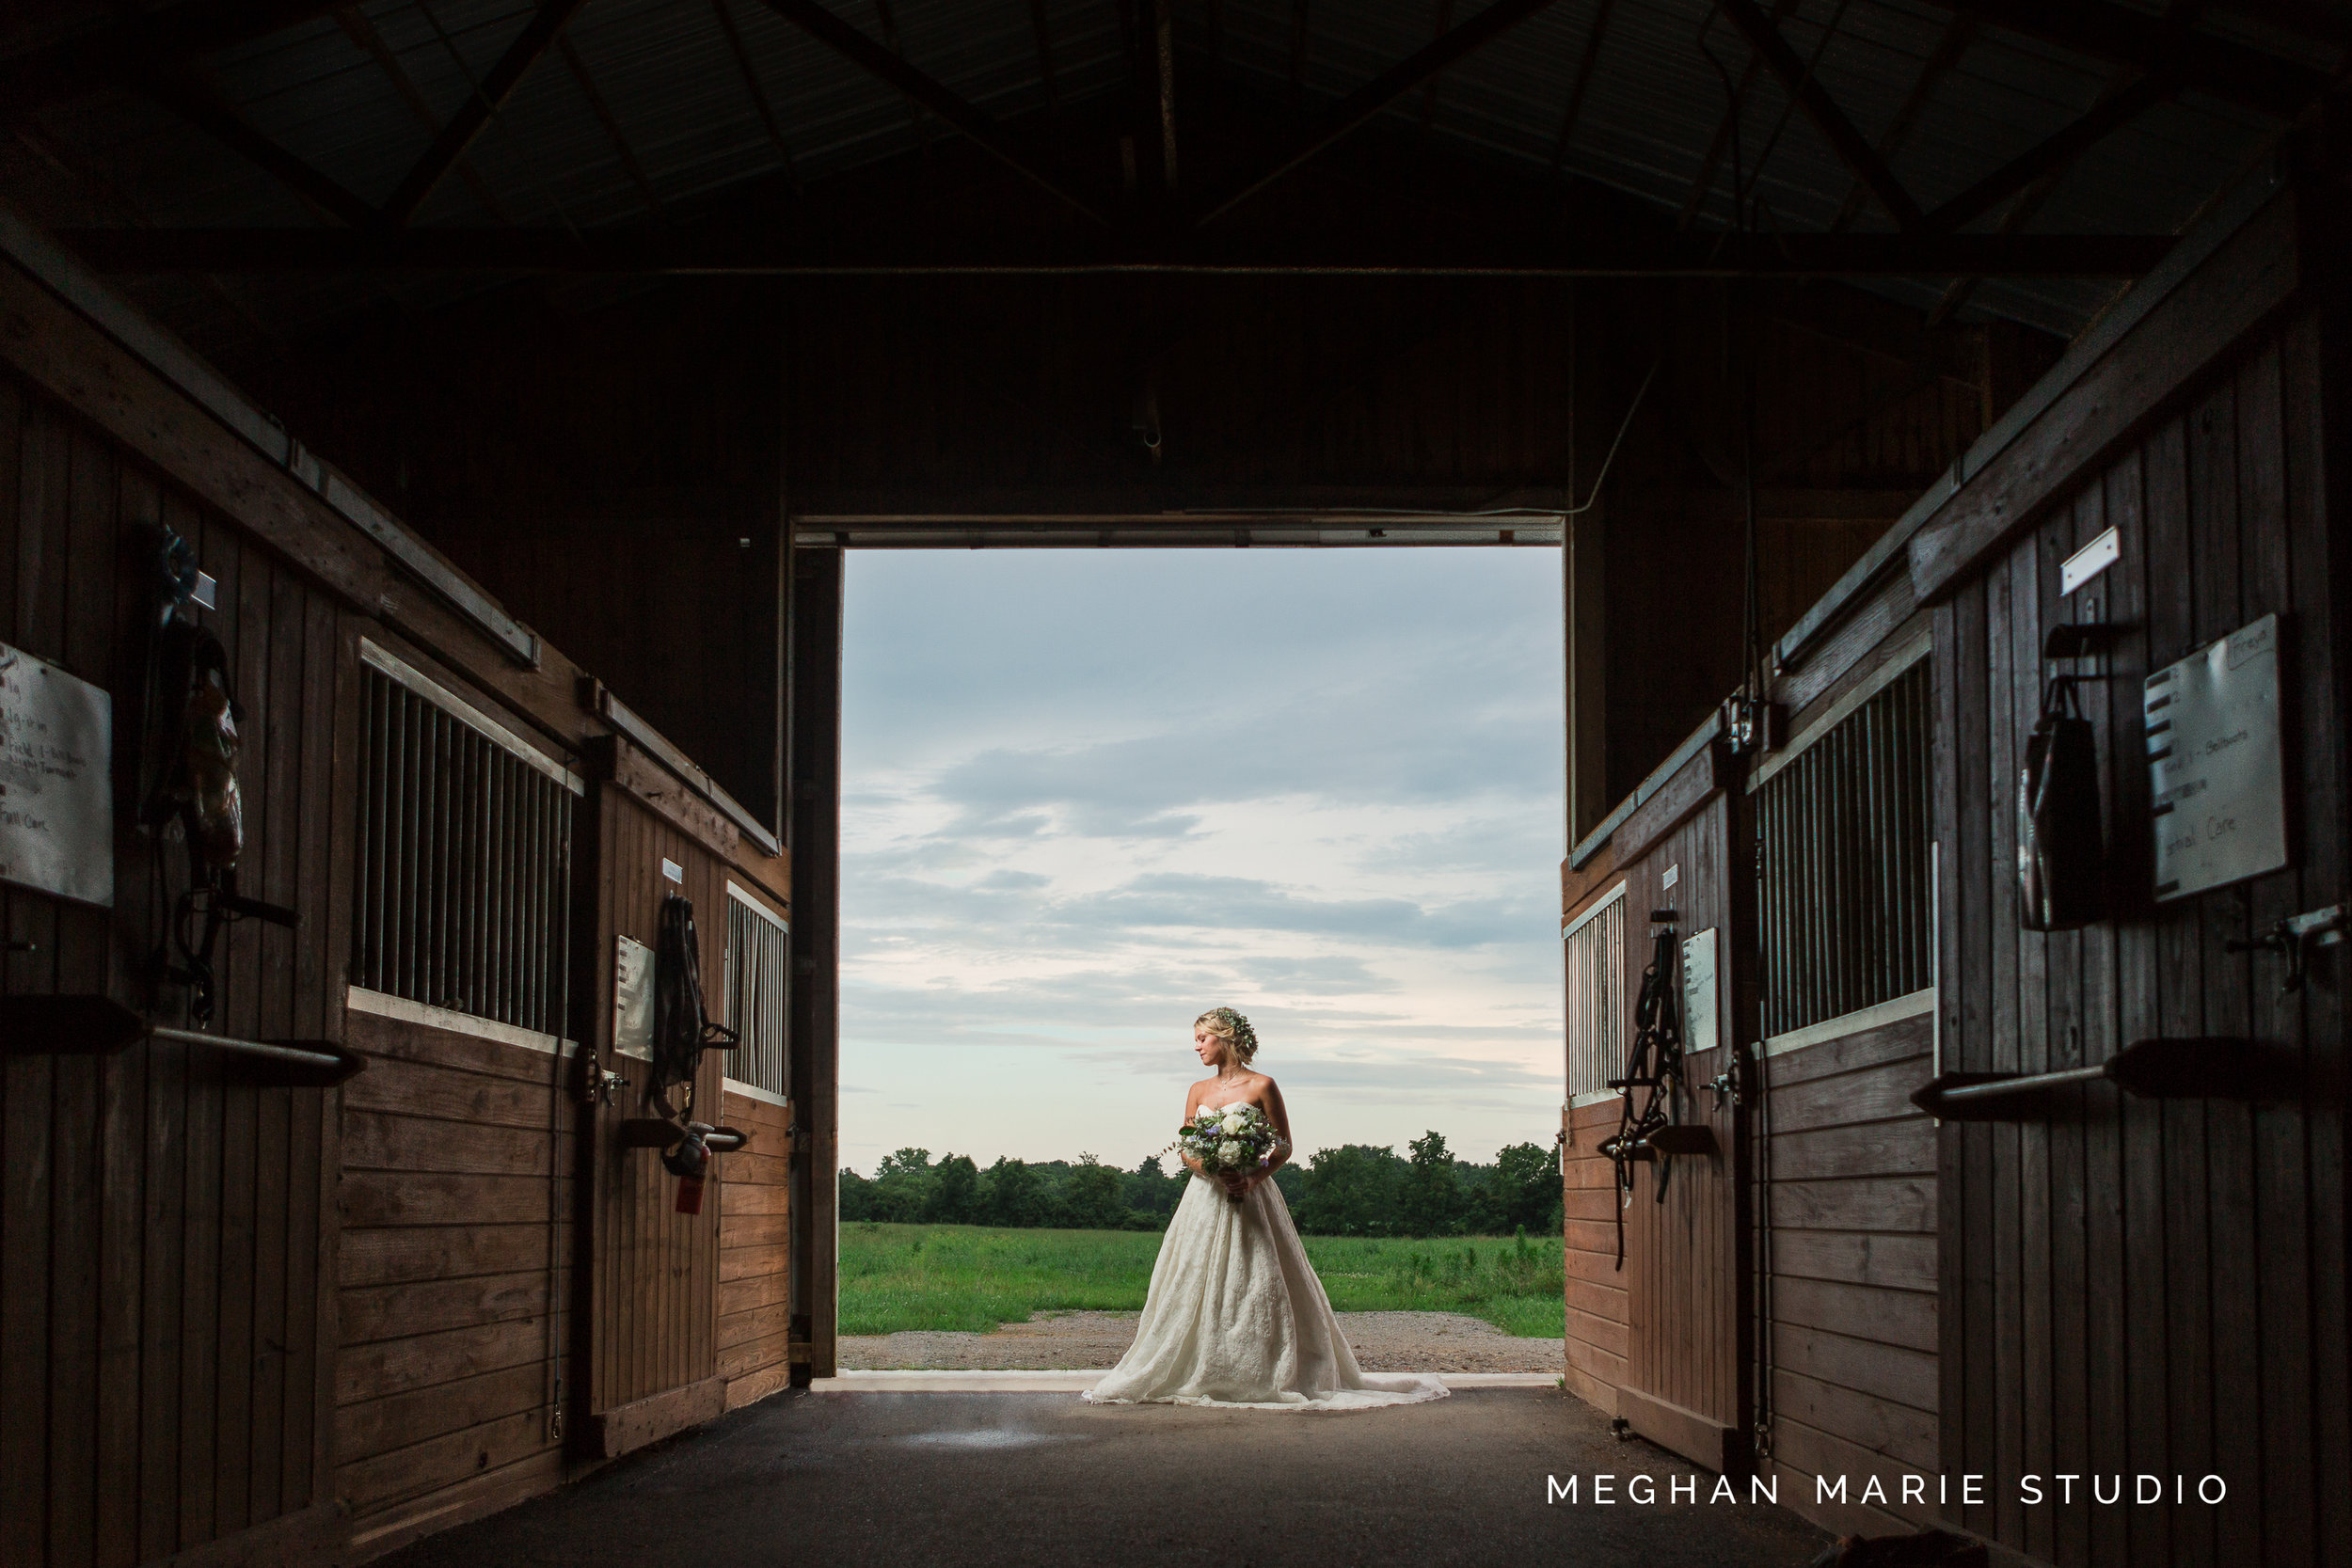 Meghan Marie Studios, Dayton Wedding Photographer, Dayton Wedding Planner